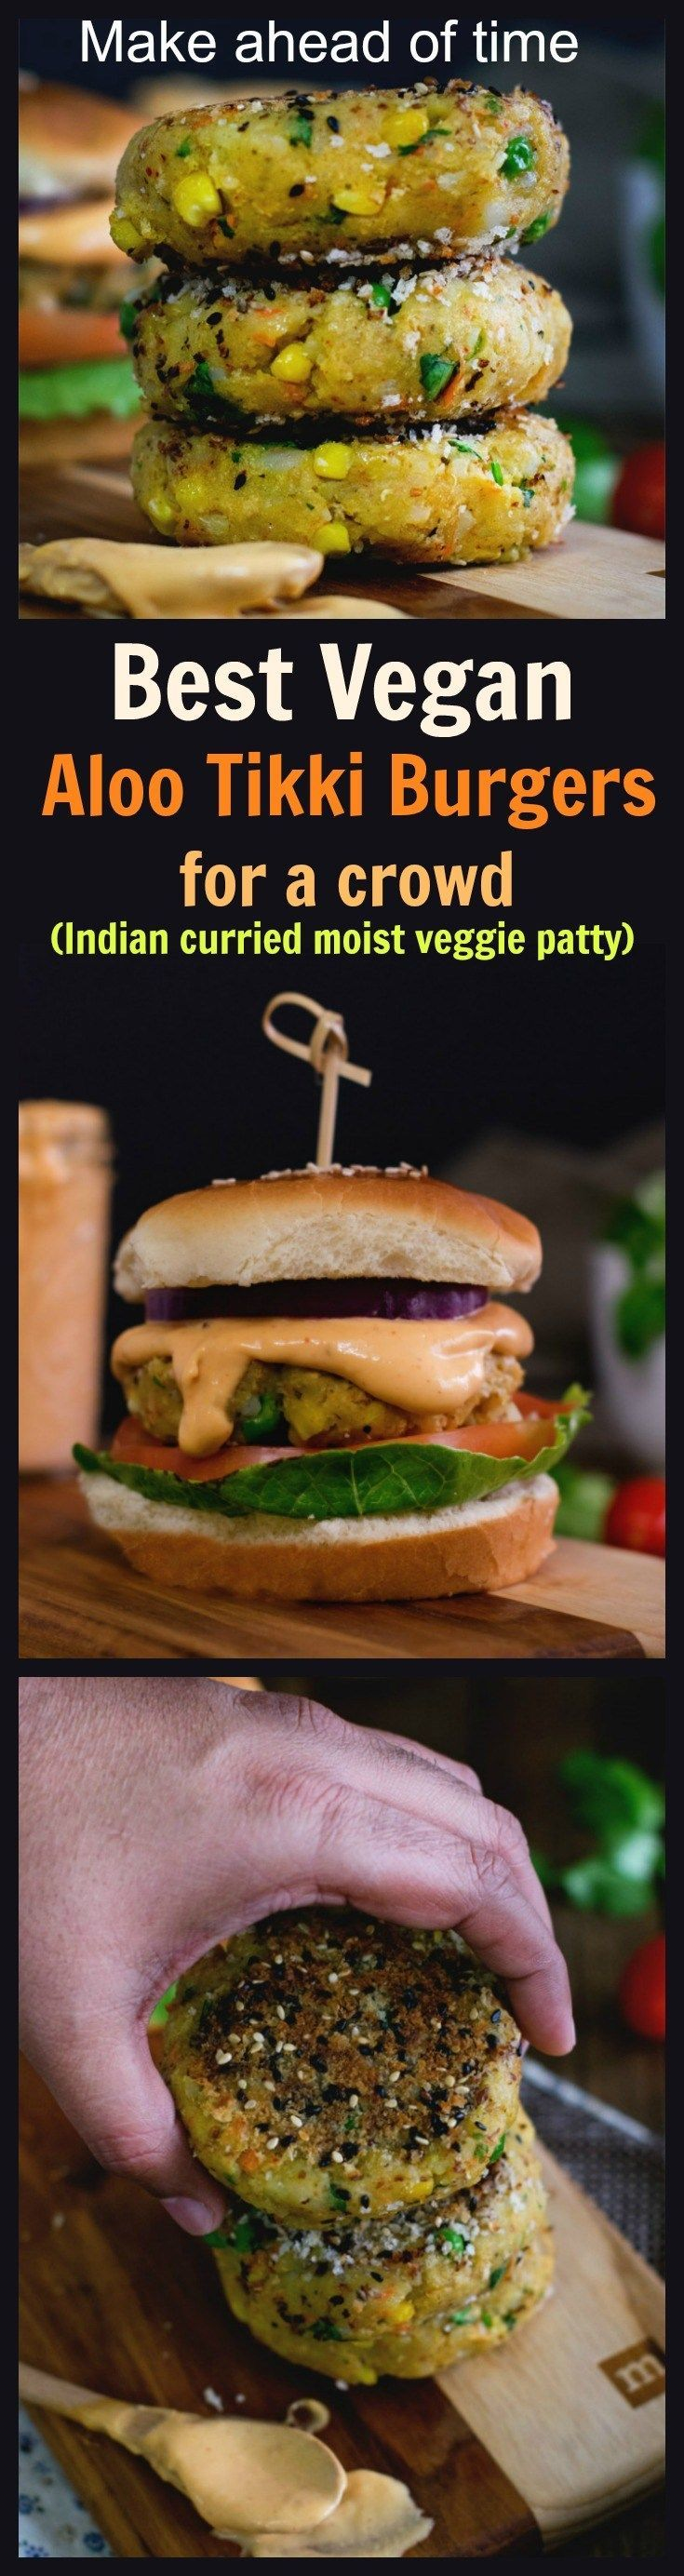 Vegan vegetable aloo tikki burgers with gluten free options. Delicious Indian curried patty slathered with killer 3 ingredient burger sauce. A breeze to make ahead of time.